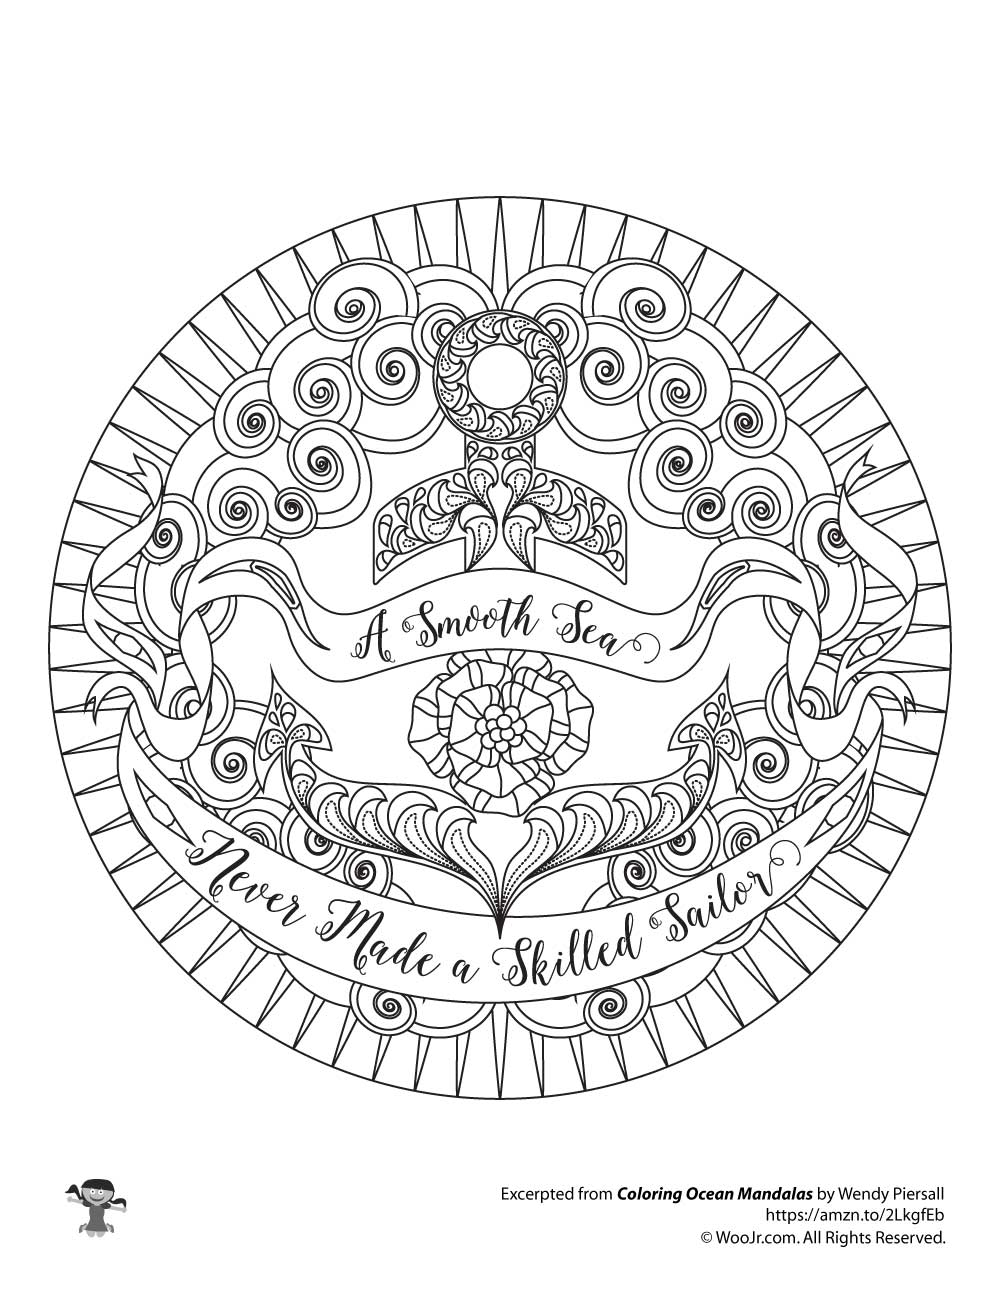 Nautical Anchor Empowering Quote Adult Coloring Page Woo Jr Kids Activities